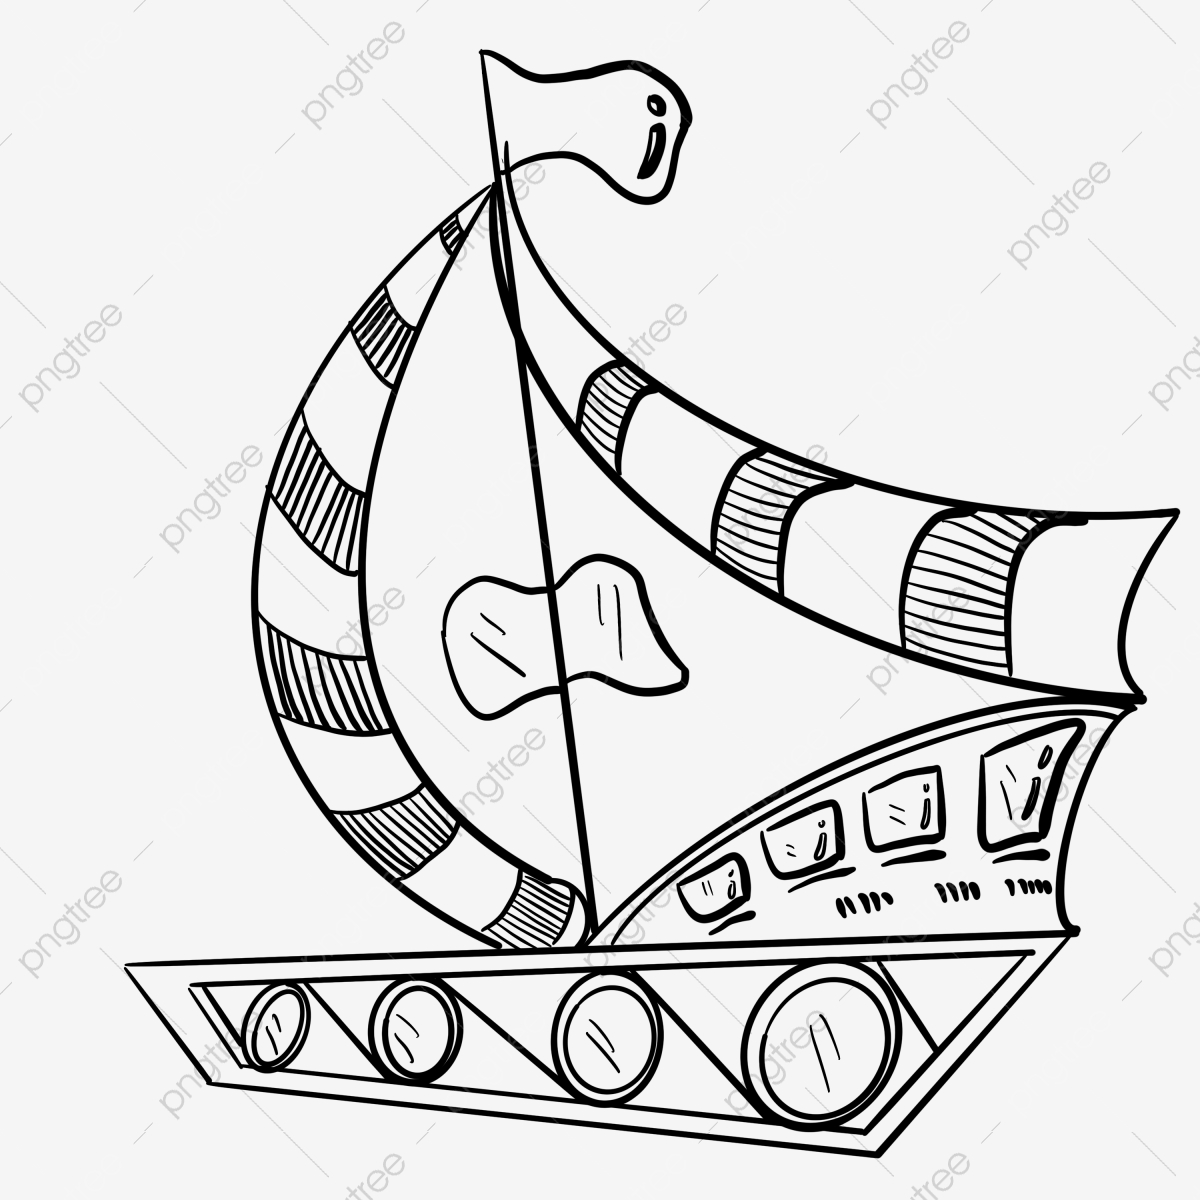 line drawing beautiful sailboat illustration line drawing sailboat cartoon illustration line drawing illustration png transparent clipart image and psd file for free download https pngtree com freepng line drawing beautiful sailboat illustration 4640554 html